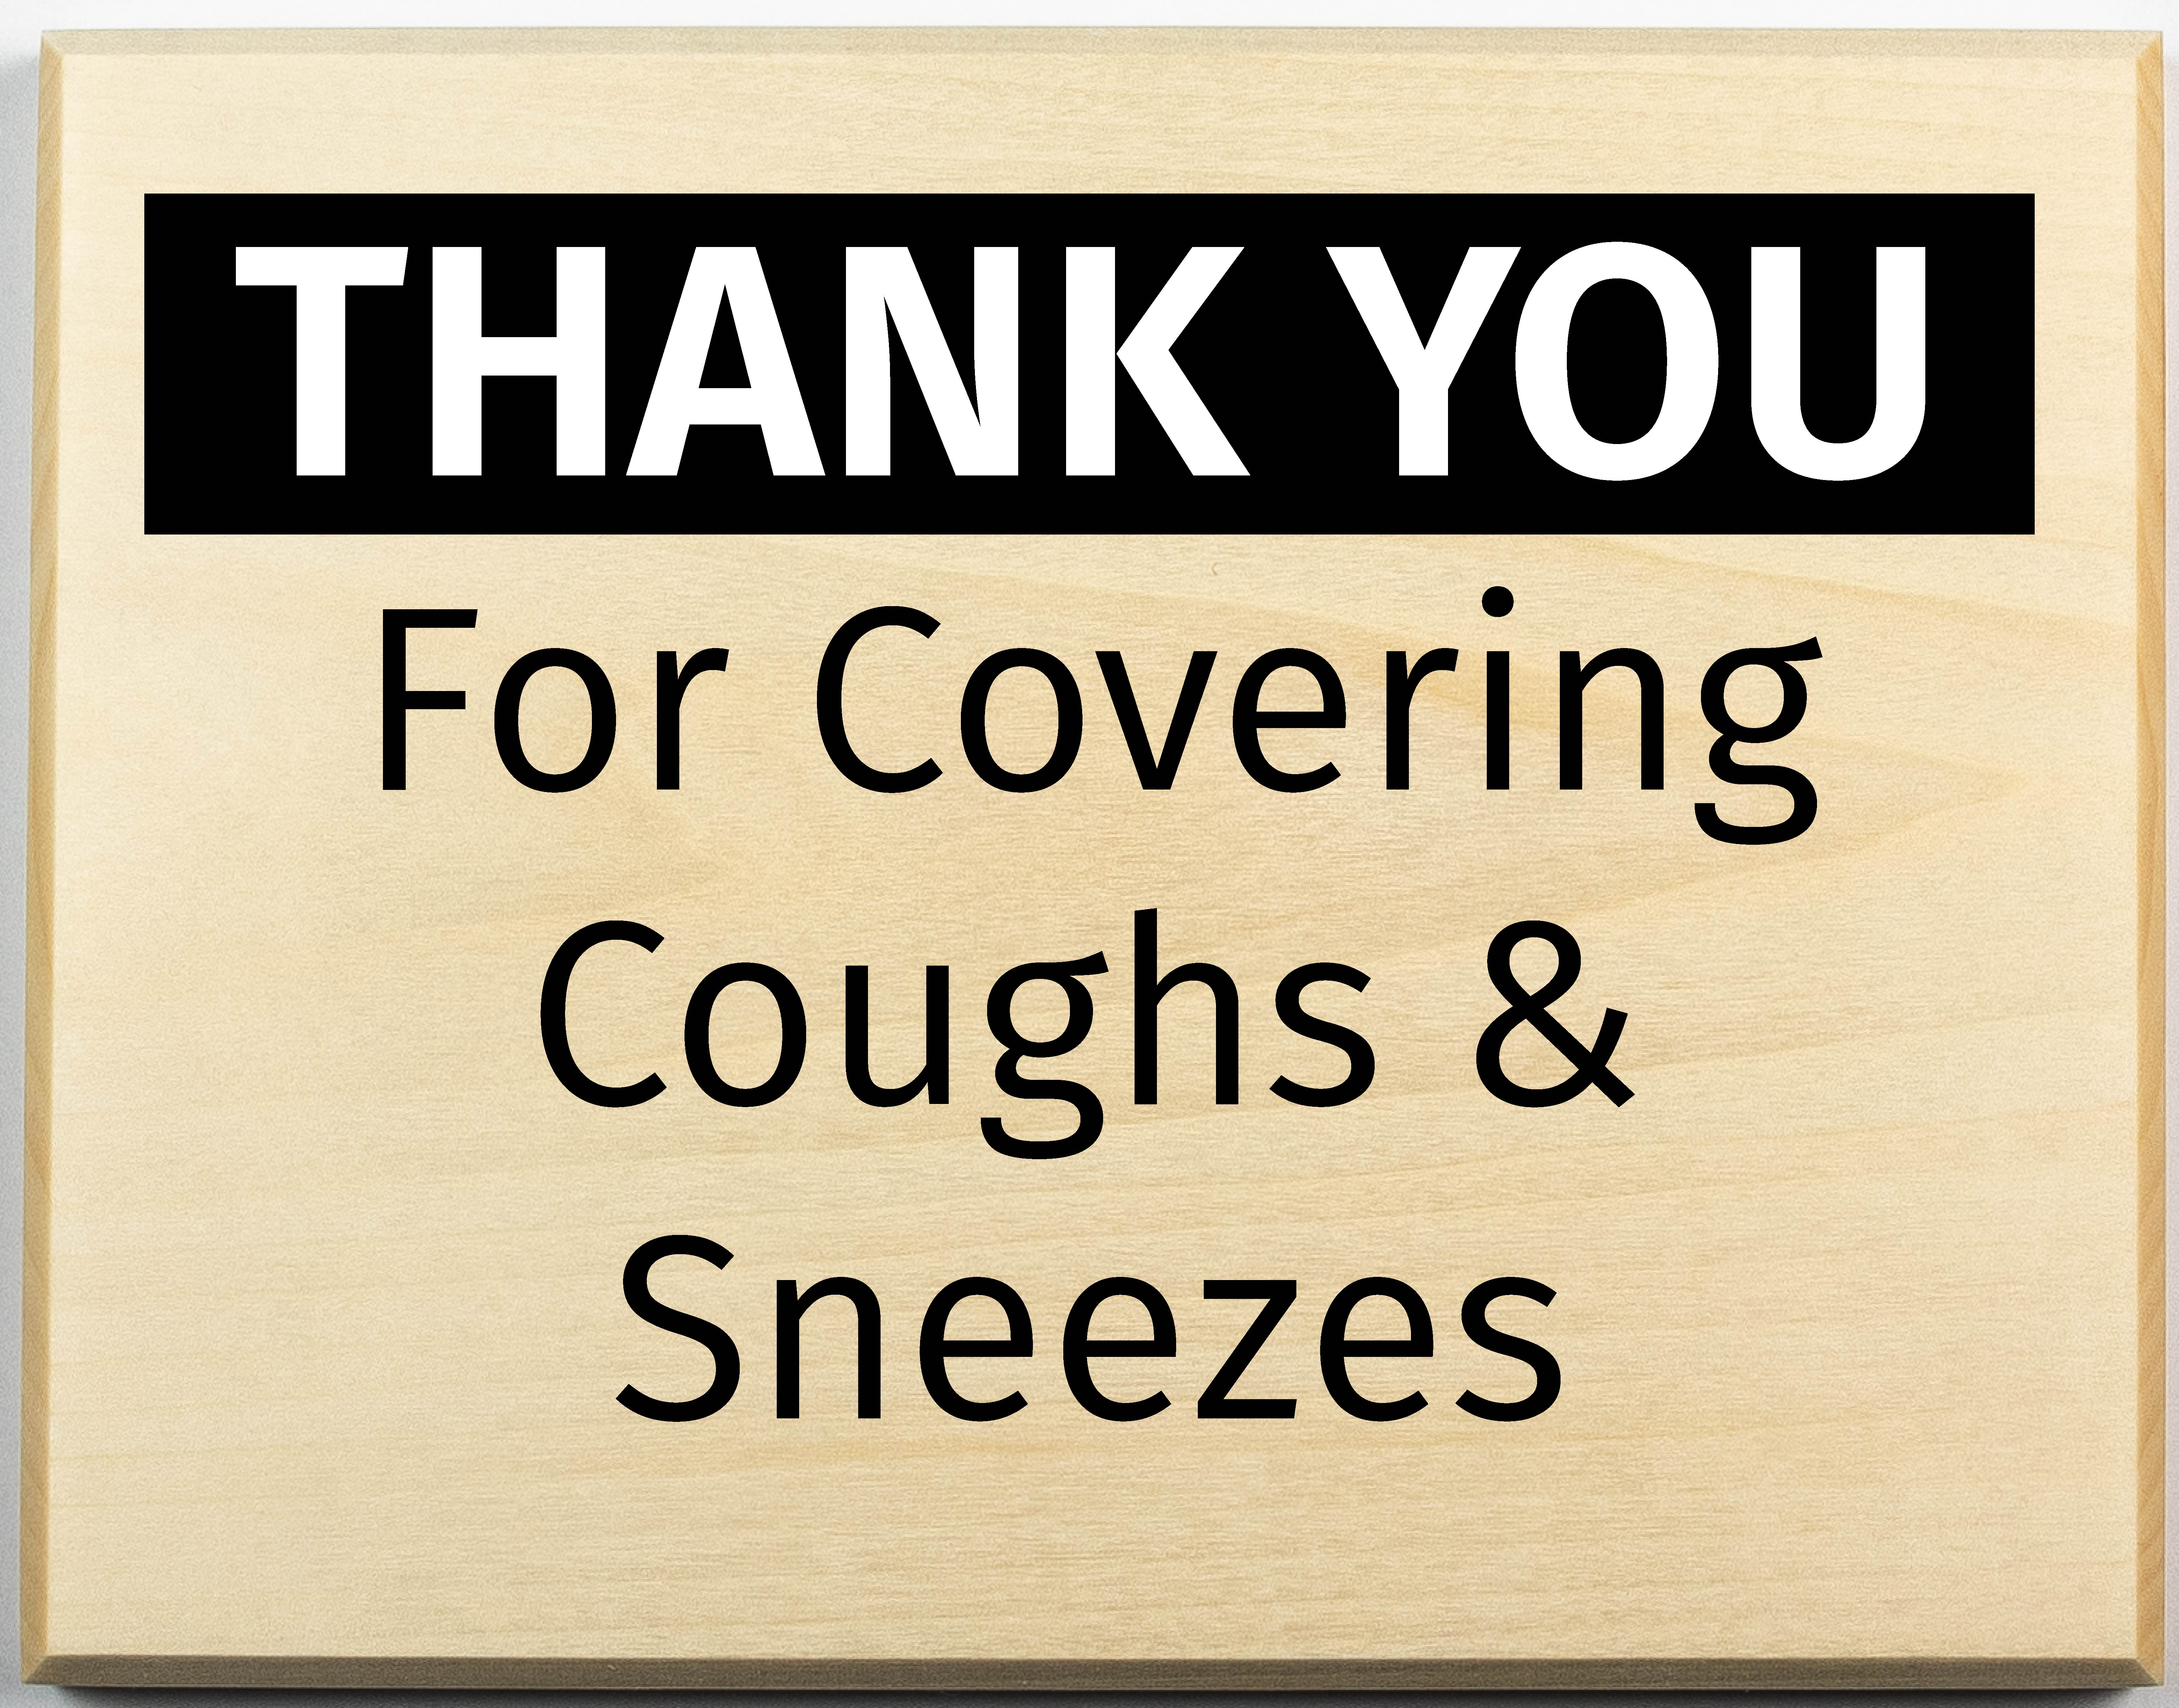 covering coughs and sneezes sign